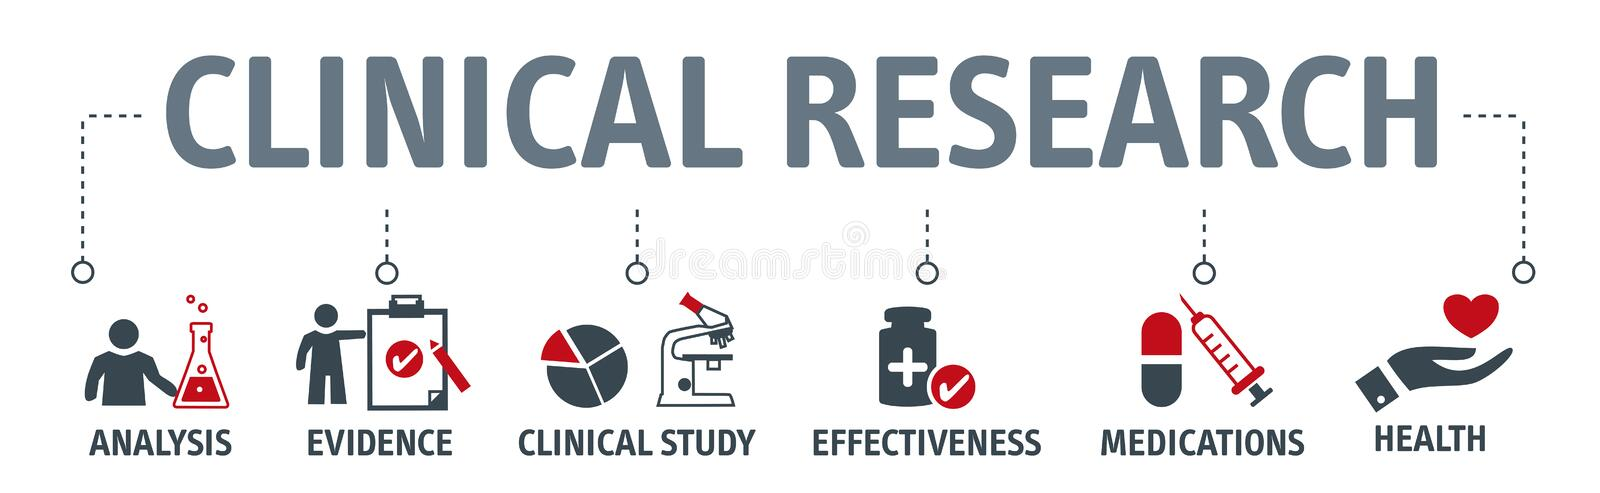 Banner clinical resarch concept illustration. Banner clinical research concept Science, chemistry, technology vector illustration with icons and keywords stock illustration